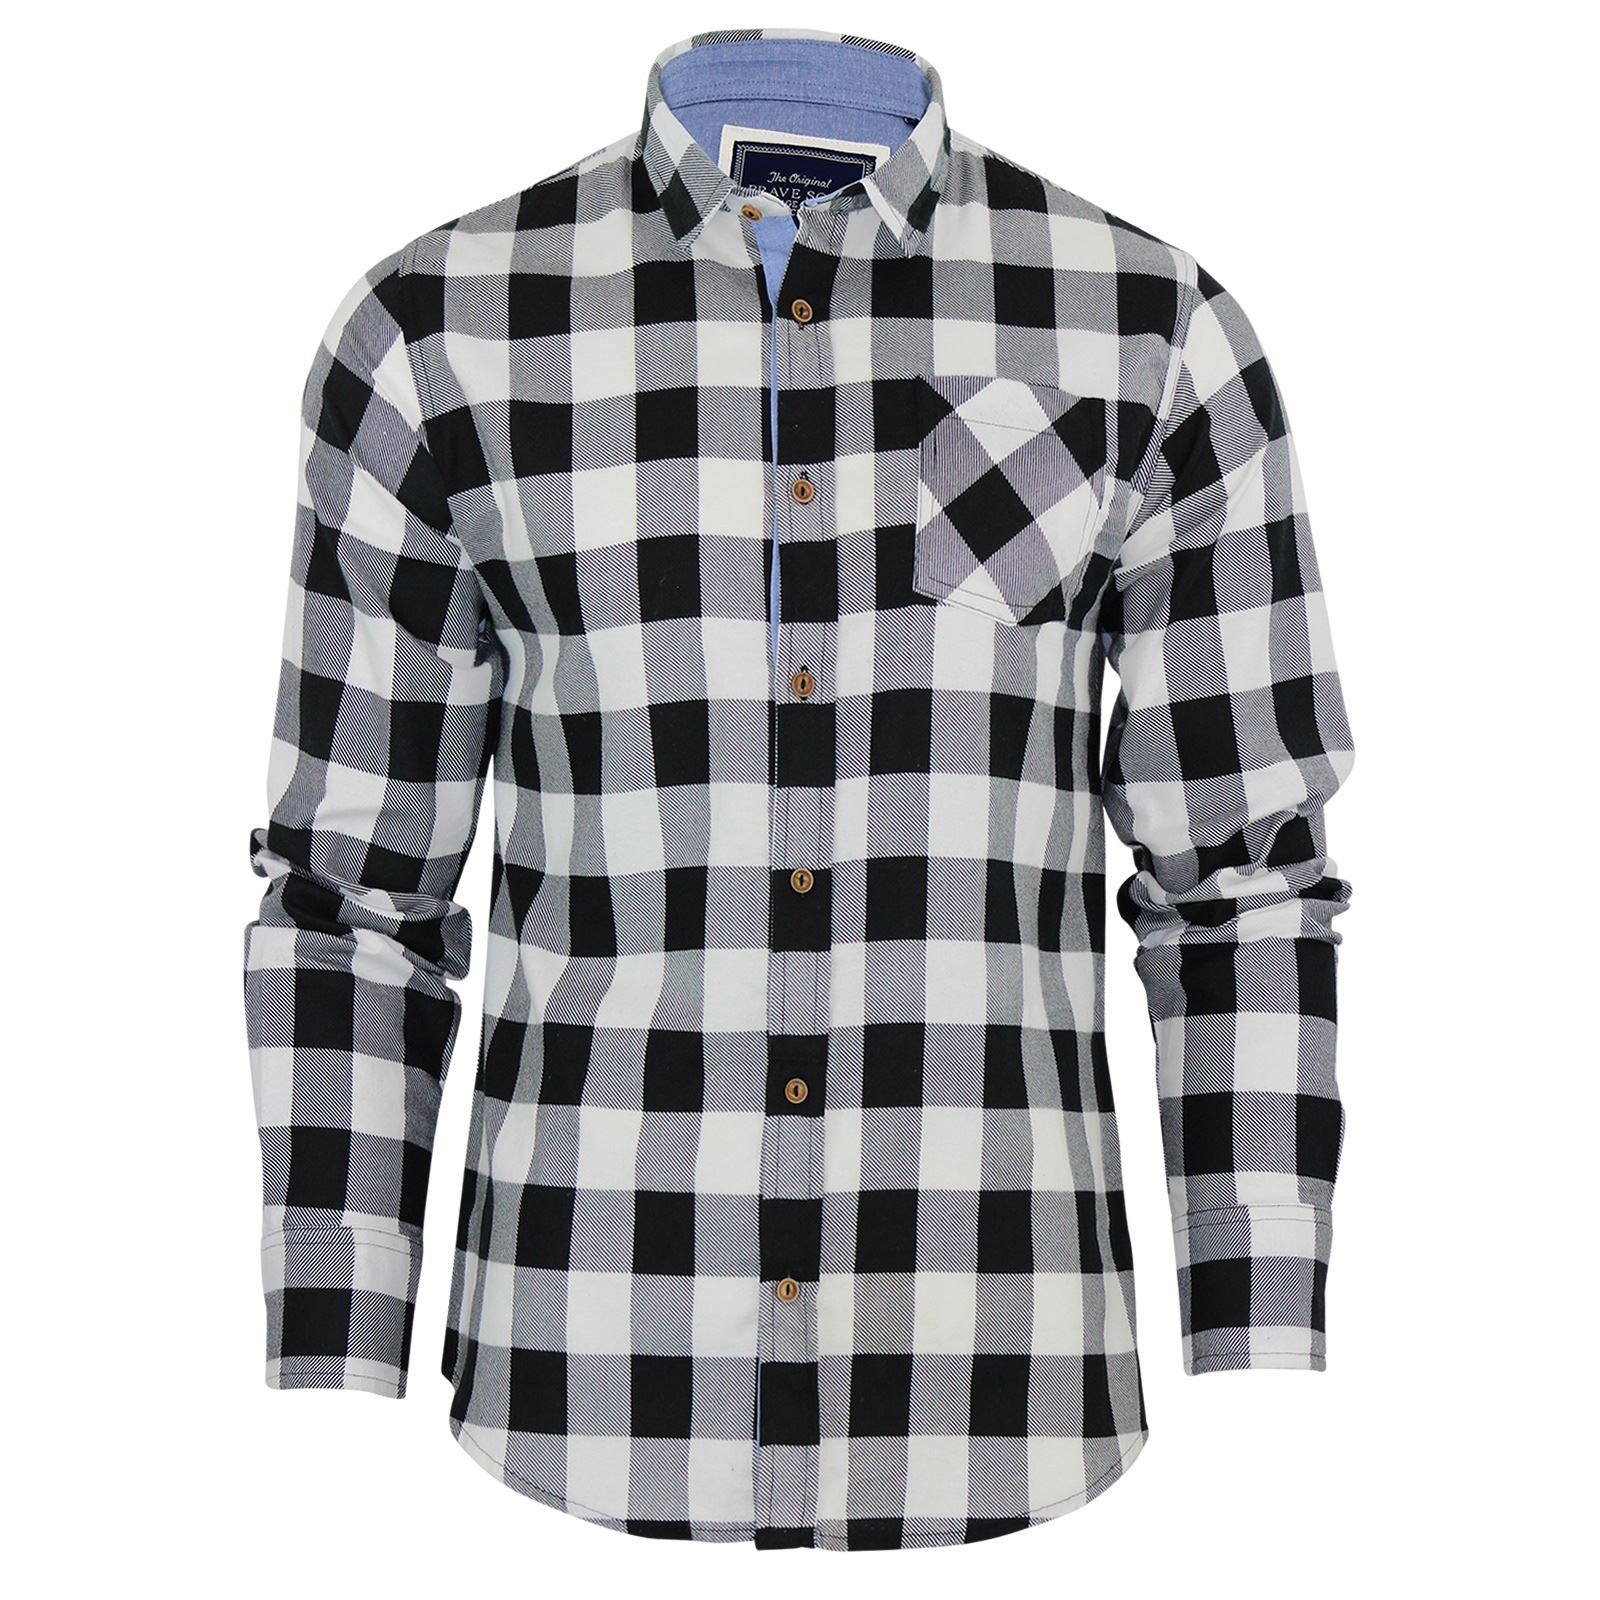 Brave-Soul-Mens-Check-Shirt-Flannel-Brushed-Cotton-Long-Sleeve-Casual-Top thumbnail 45